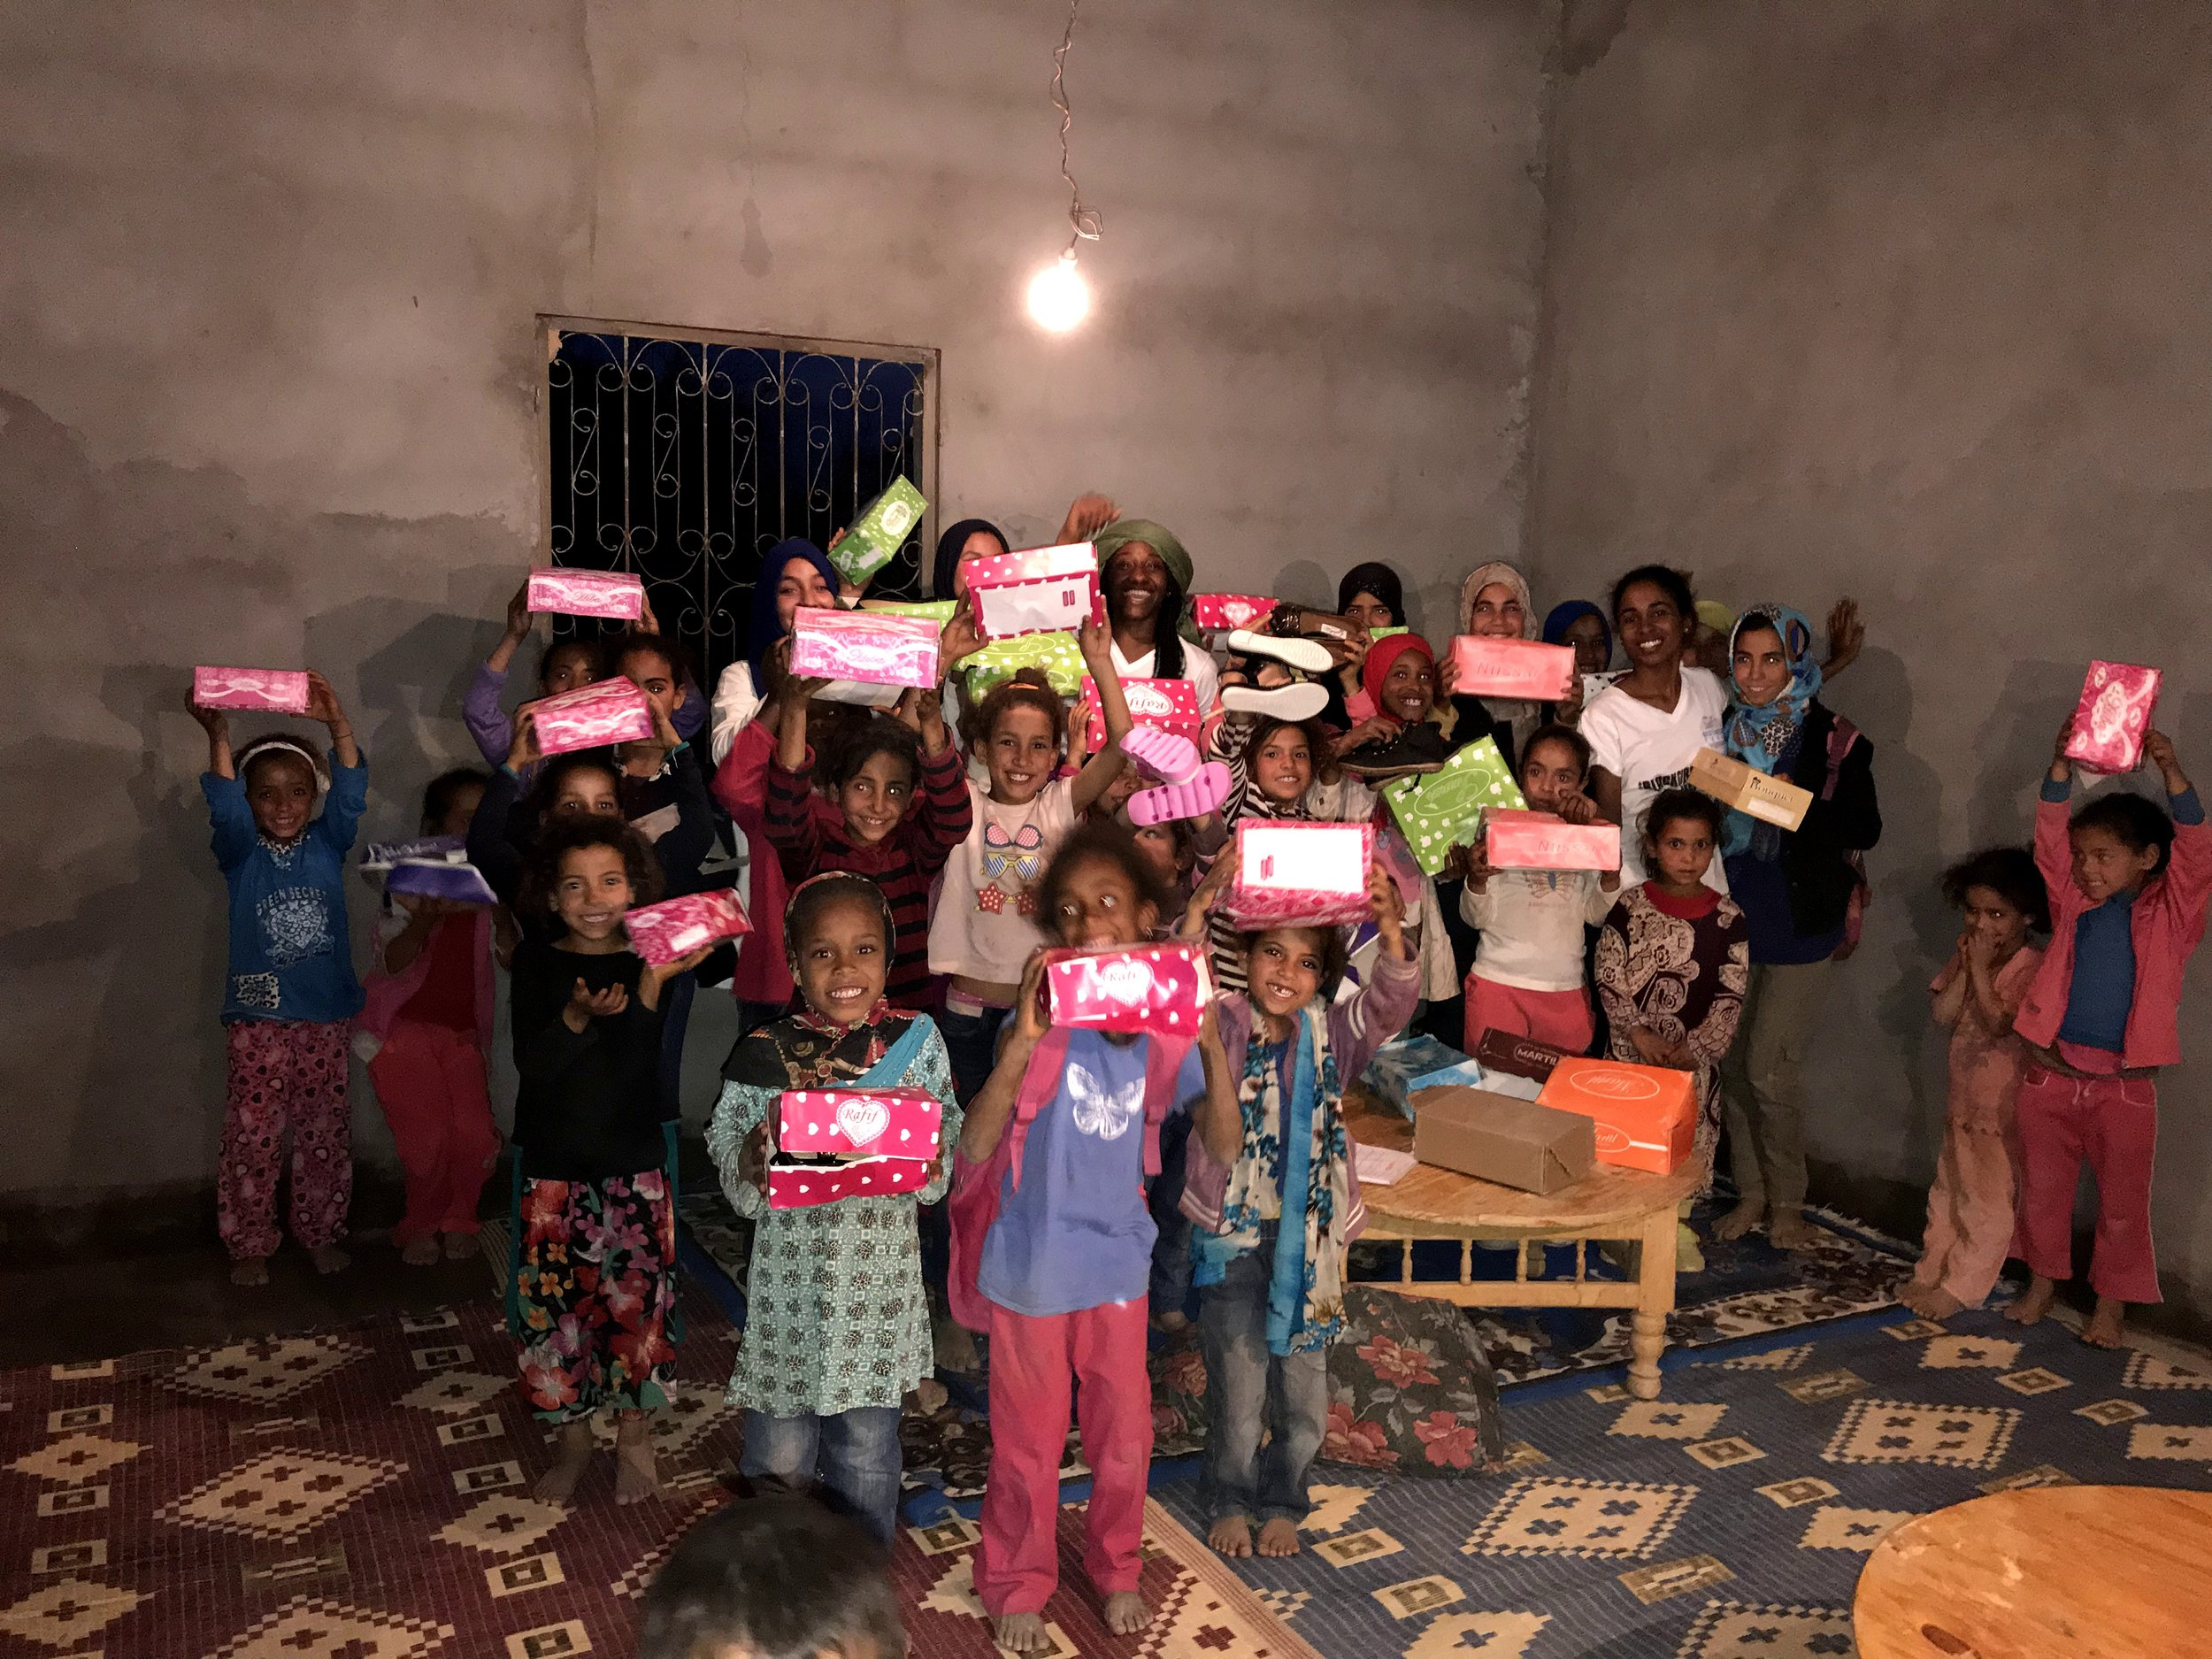 Happy Feet! - Kids in rural parts of Morocco walk miles to school. We donated 80 pairs of new shoes!